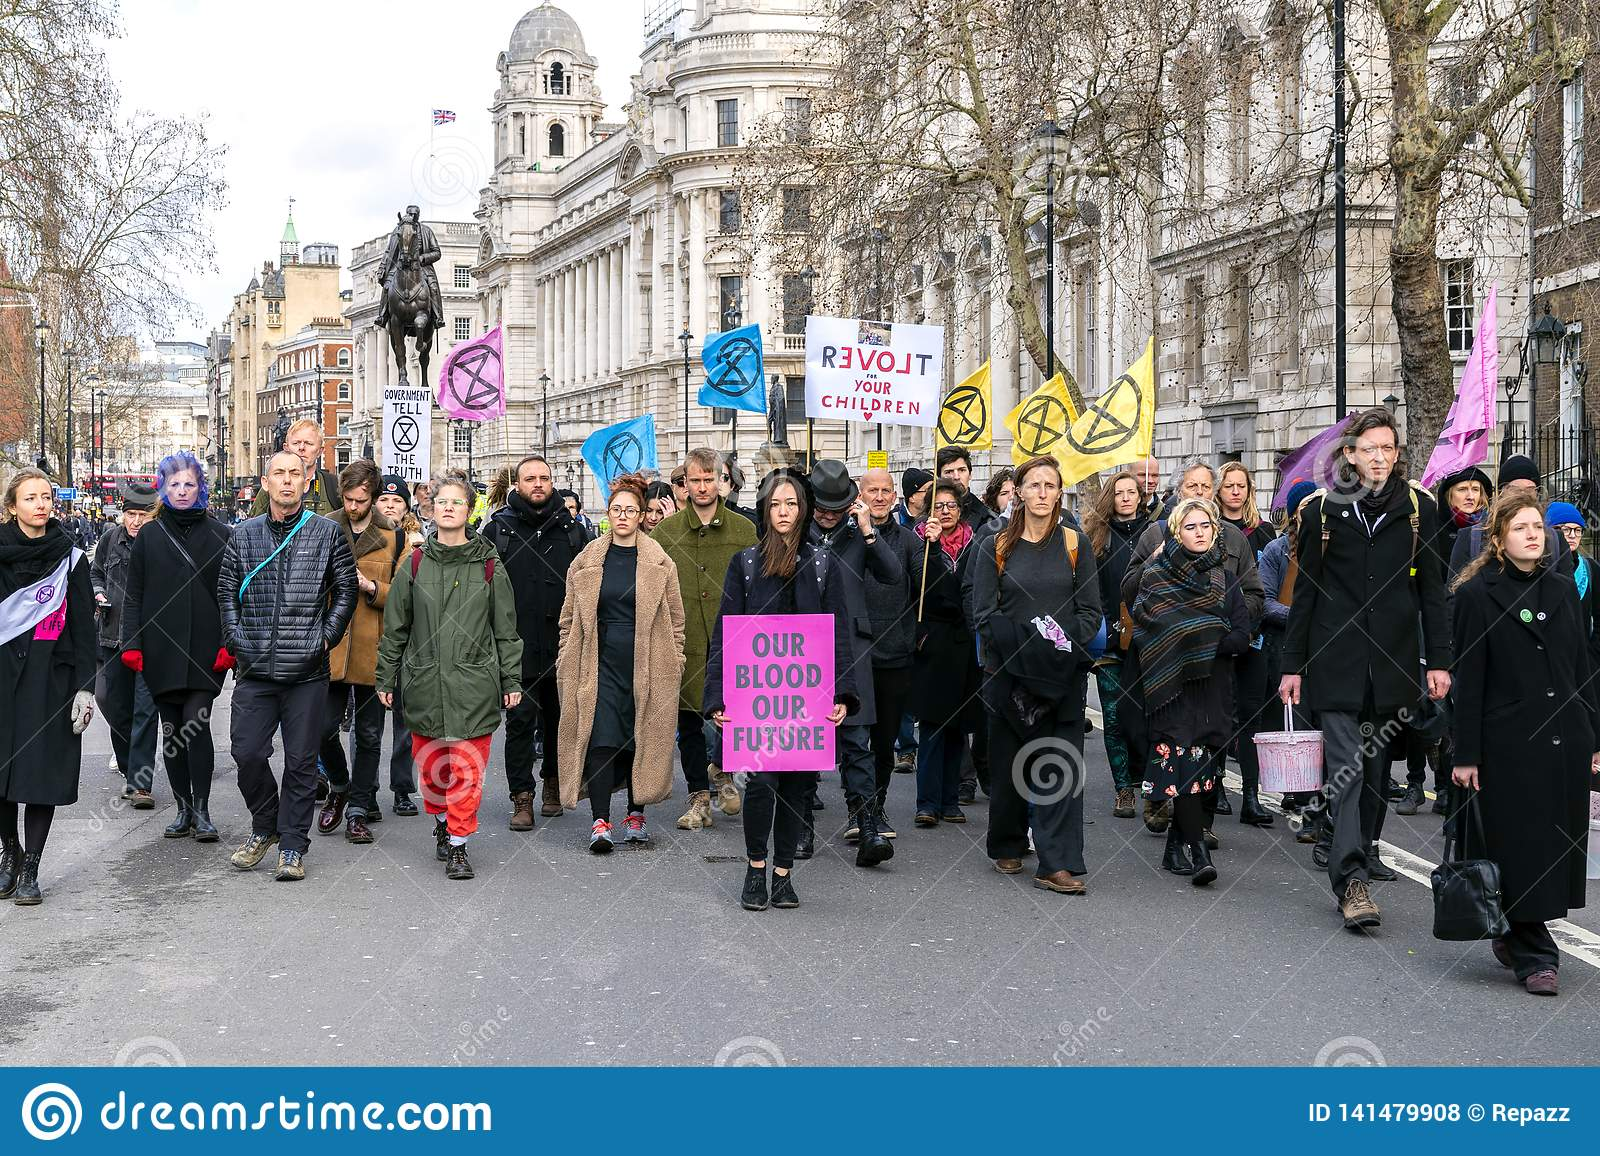 Extinction Rebellion Rally Demonstration in London